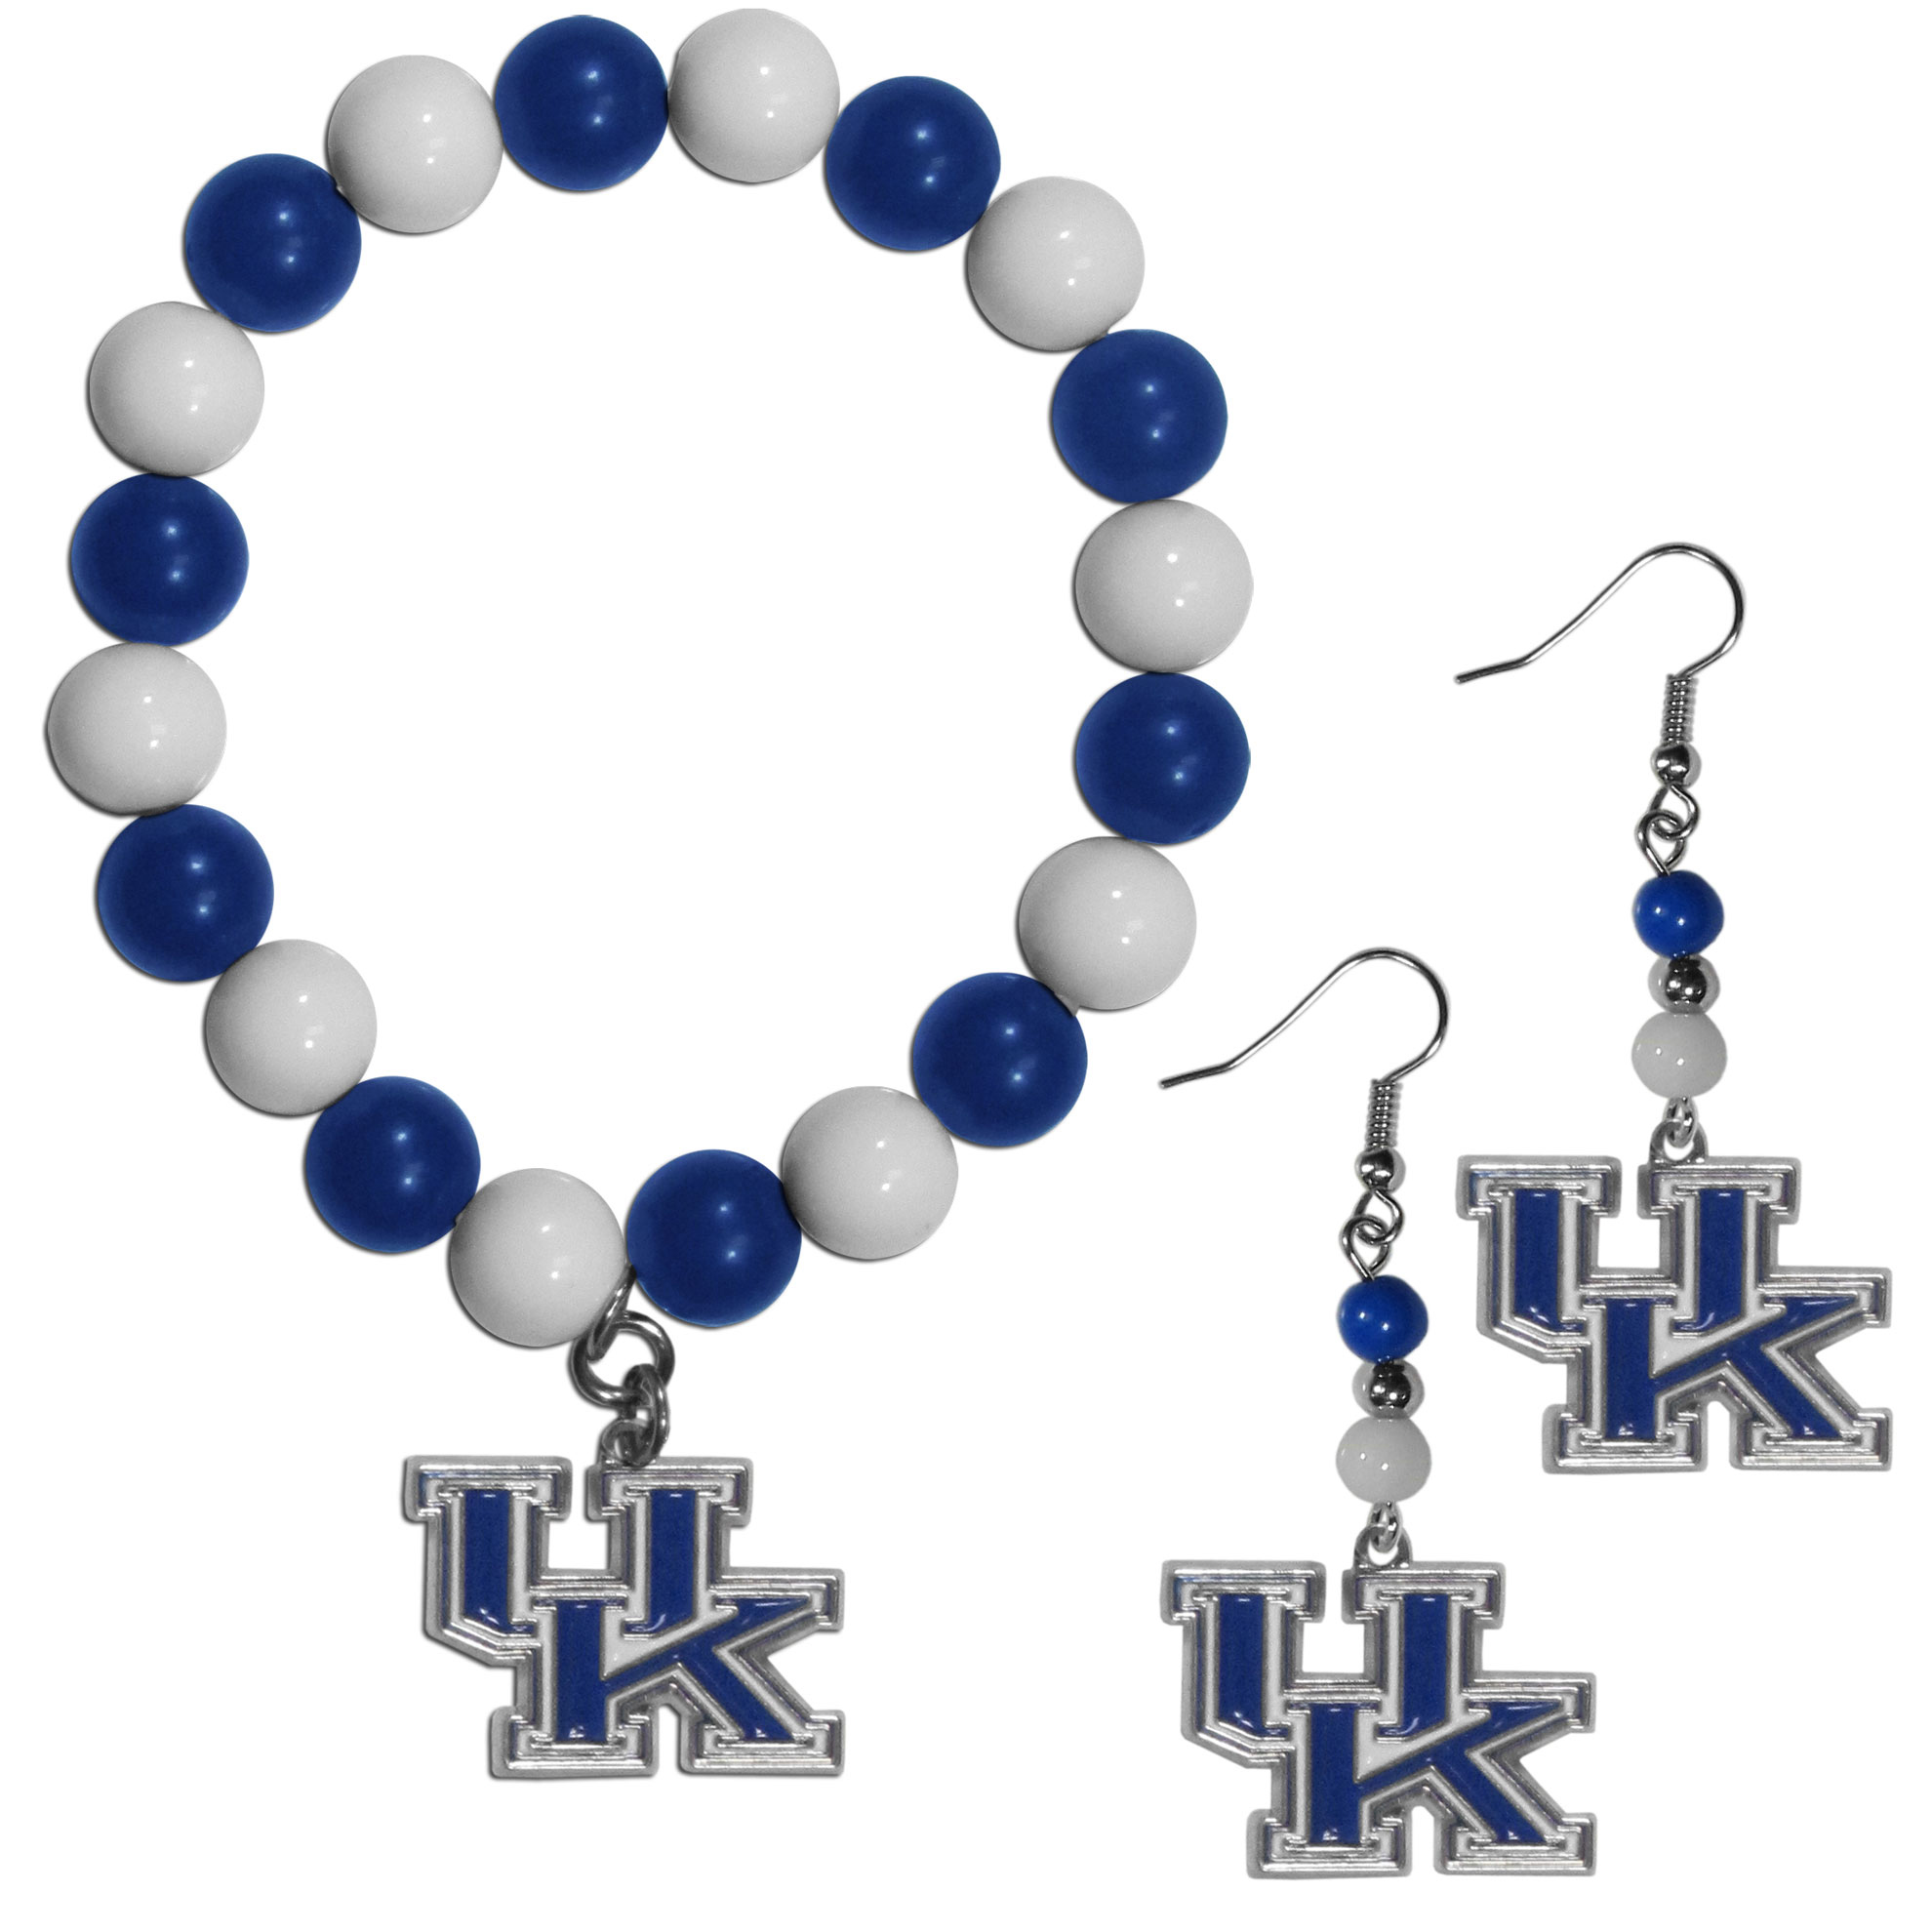 Kentucky Wildcats Fan Bead Earrings and Bracelet Set - This fun and colorful Kentucky Wildcats fan bead jewelry set is fun and casual with eye-catching beads in bright team colors. The fashionable dangle earrings feature a team colored beads that drop down to a carved and enameled charm. The stretch bracelet has larger matching beads that make a striking statement and have a matching team charm. These sassy yet sporty jewelry pieces make a perfect gift for any female fan. Spice up your game-day outfit with these fun colorful earrings and bracelet that are also cute enough for any day.